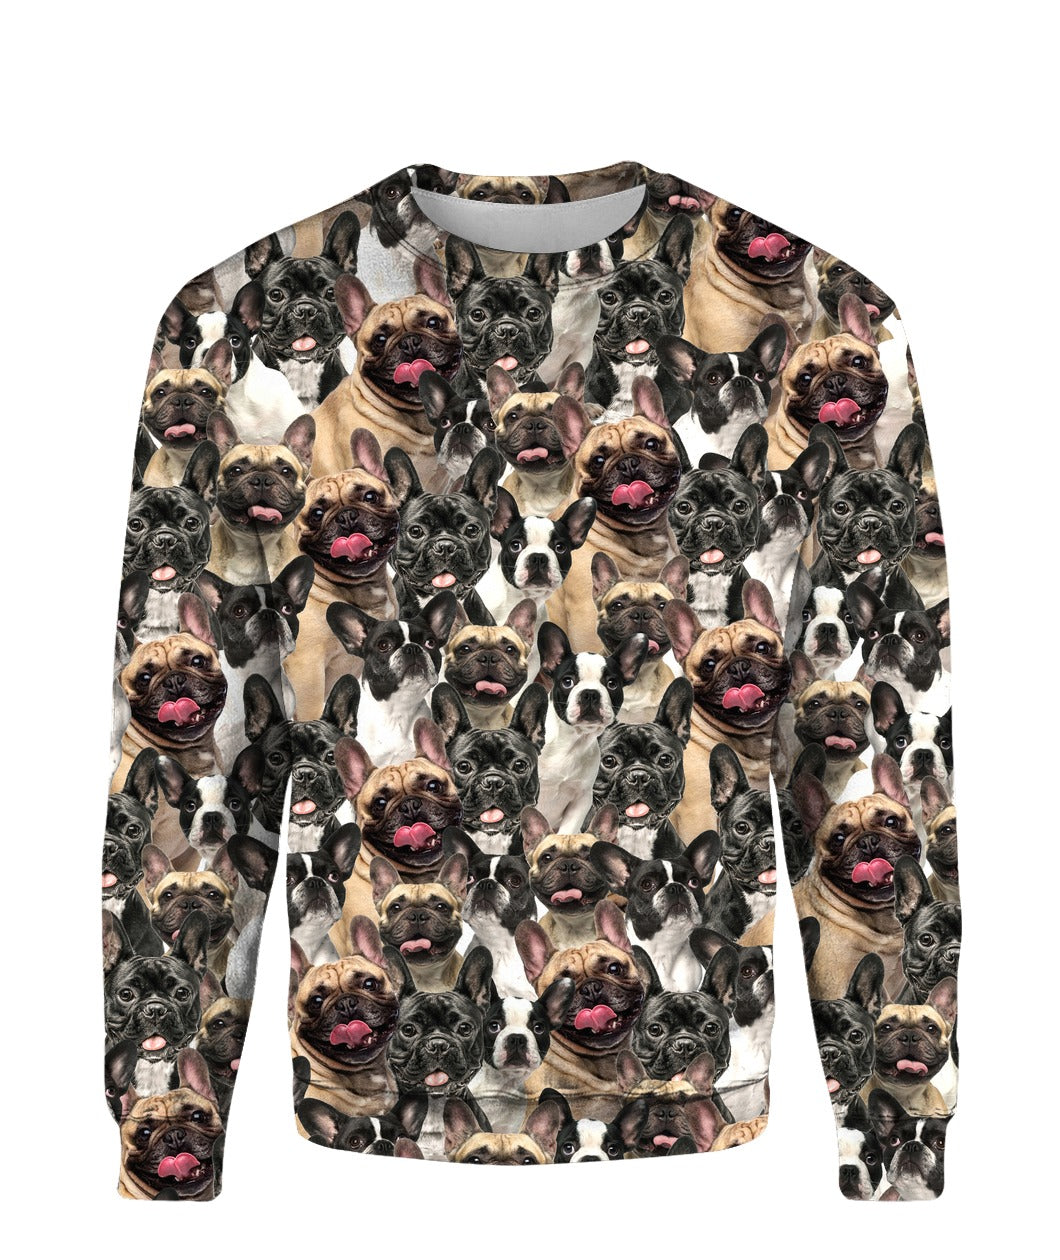 French Bulldog - Full Face - Premium Sweatshirt